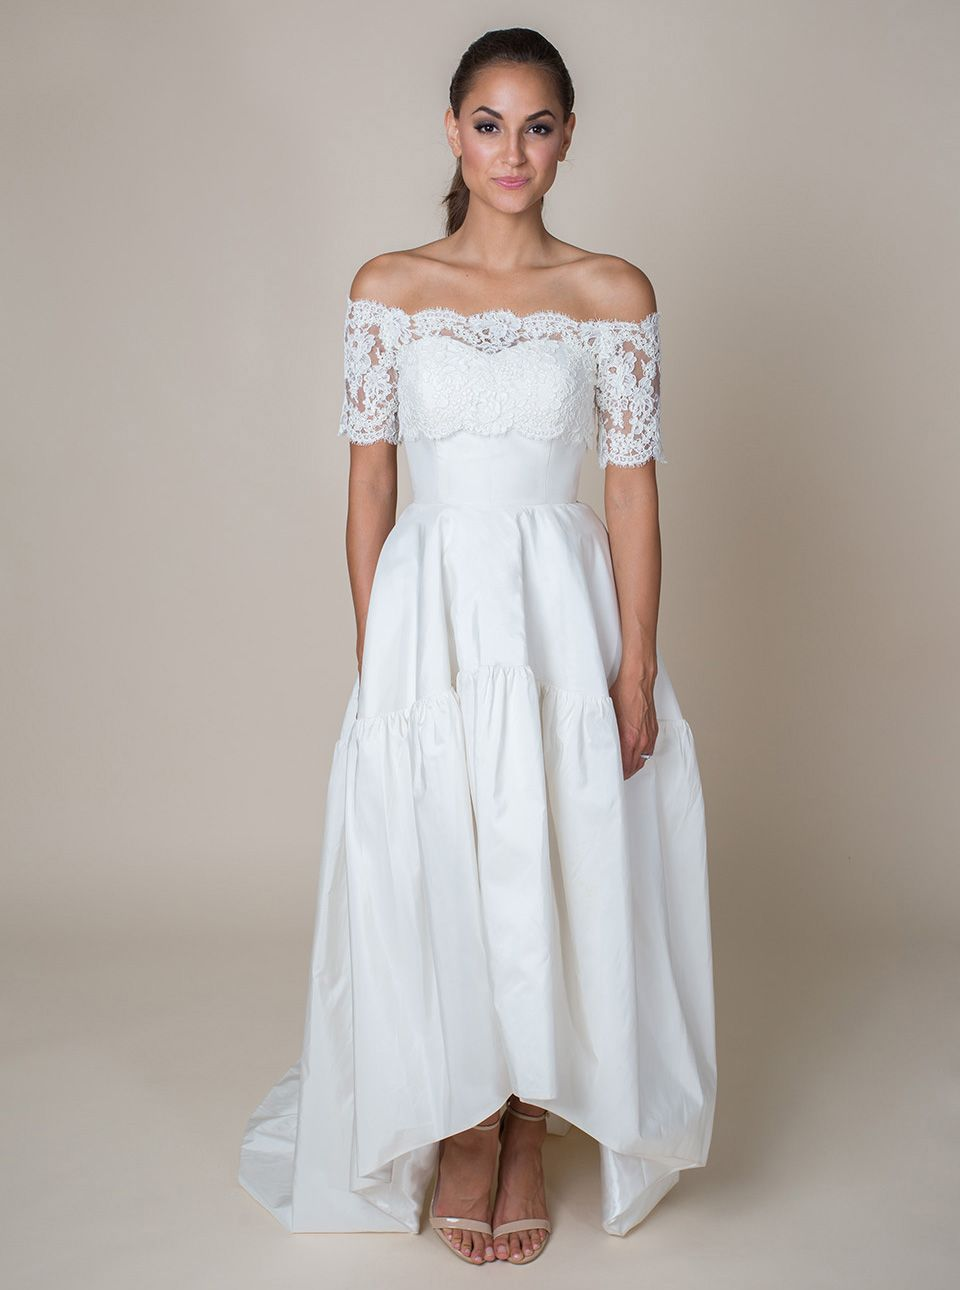 Katrina arnold chloe crop top classic and feminine the chloe katrina arnold chloe crop top classic and feminine the chloe crop top in katie lace worn over the katrina arnold wedding dress is a look that everyone ombrellifo Gallery